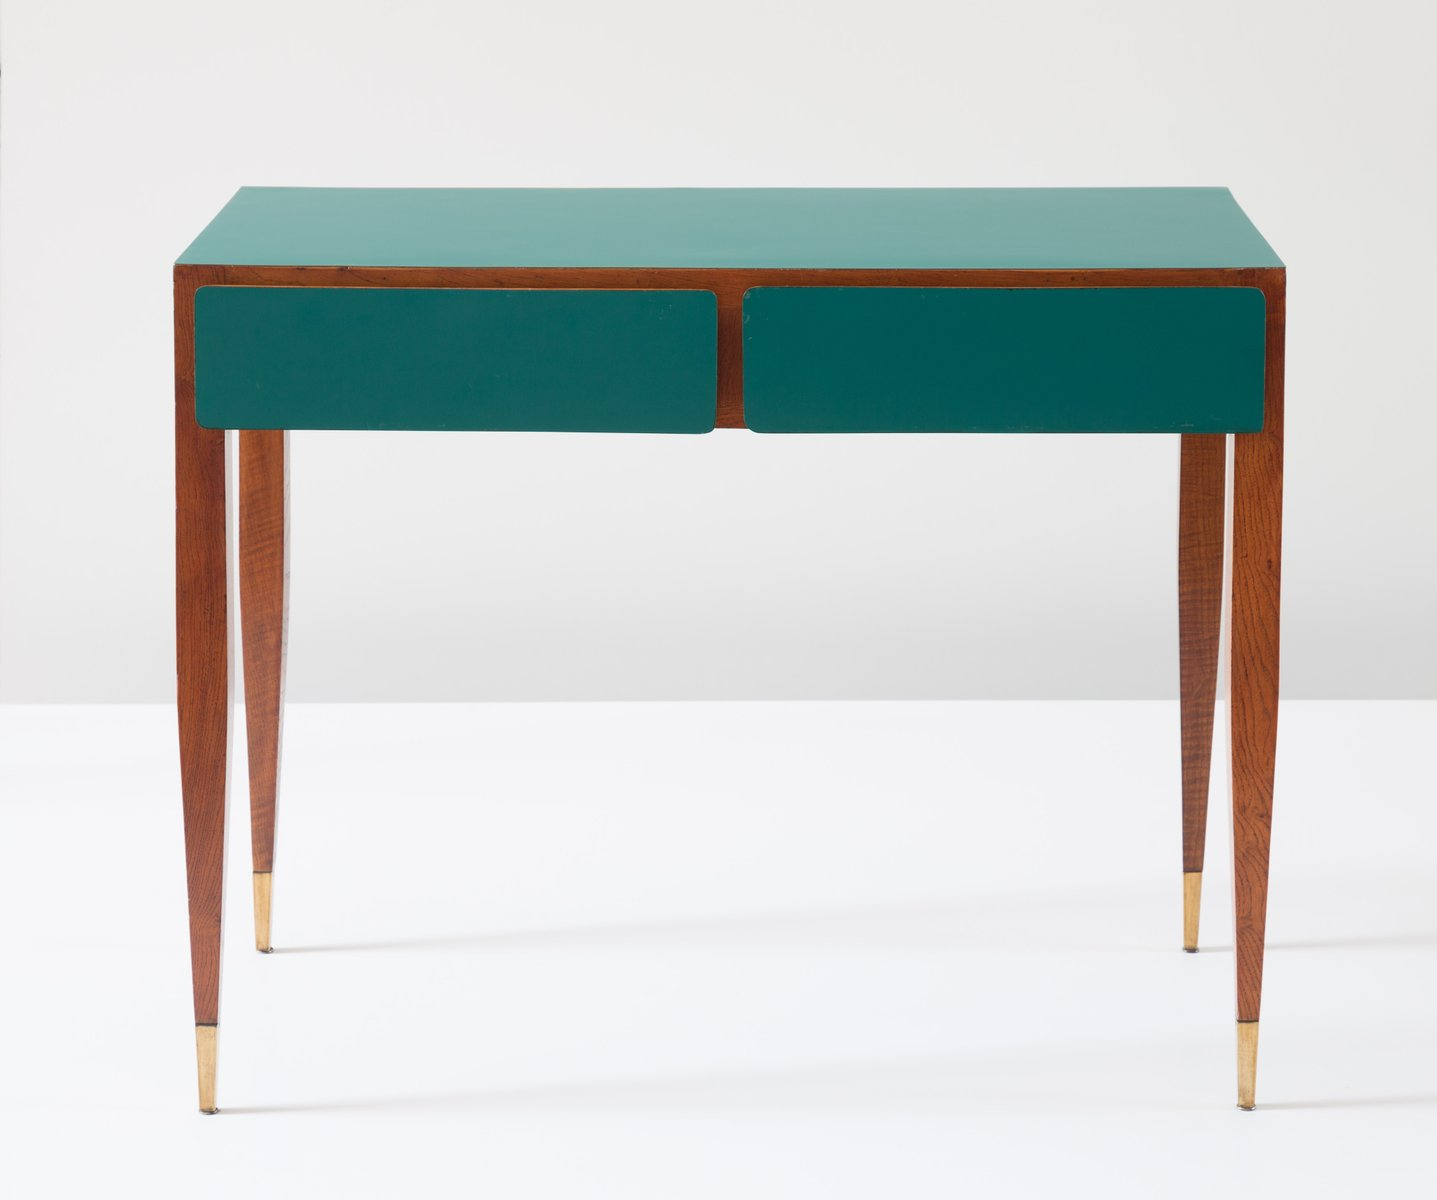 Vanity table by gio ponti for giordano chiesa 1964 for sale at pamono geotapseo Images